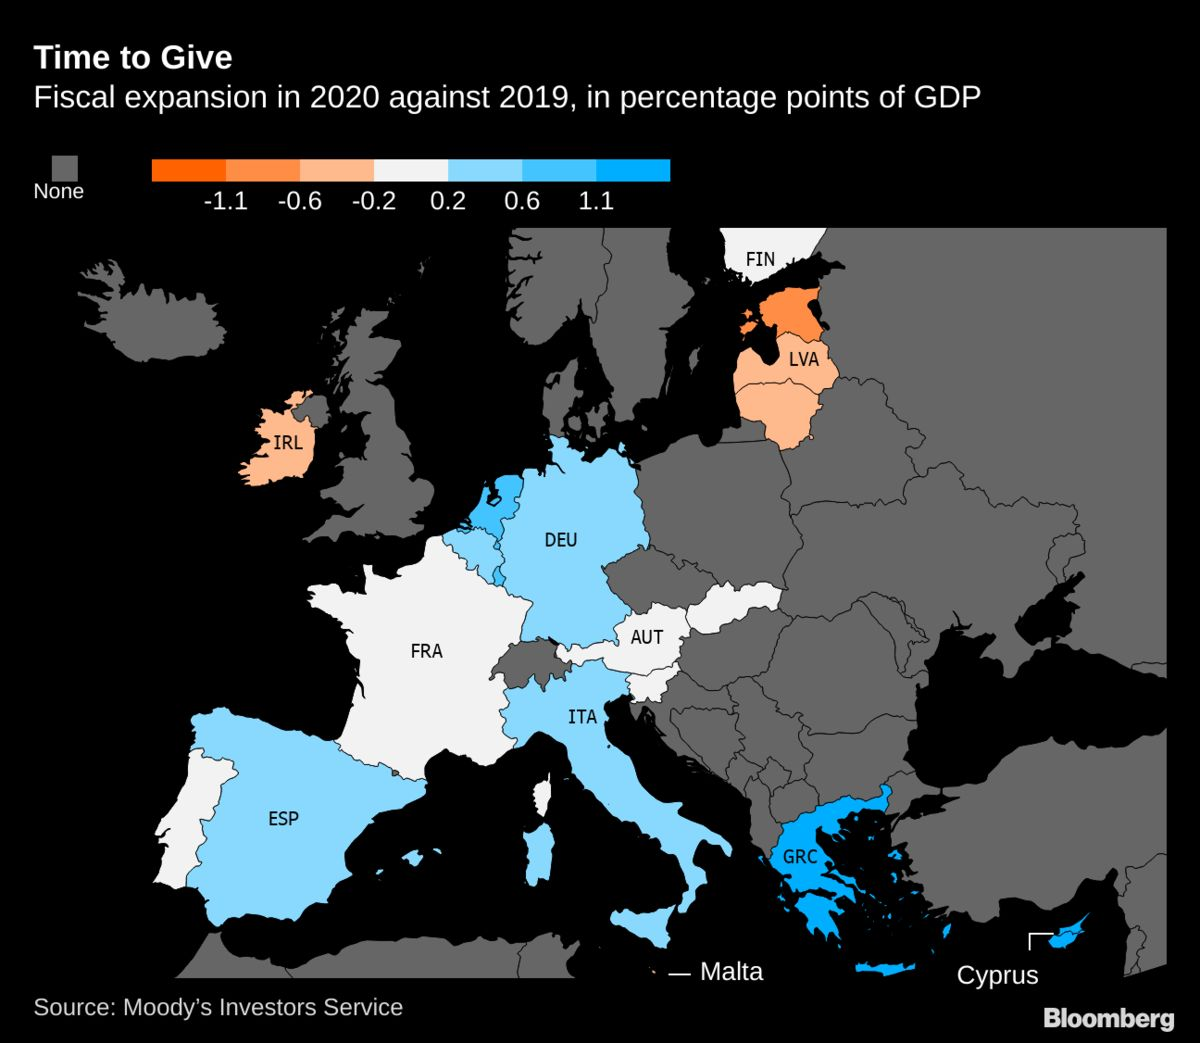 Austerity-Hit Greece Headed for Biggest Euro-Area Easing